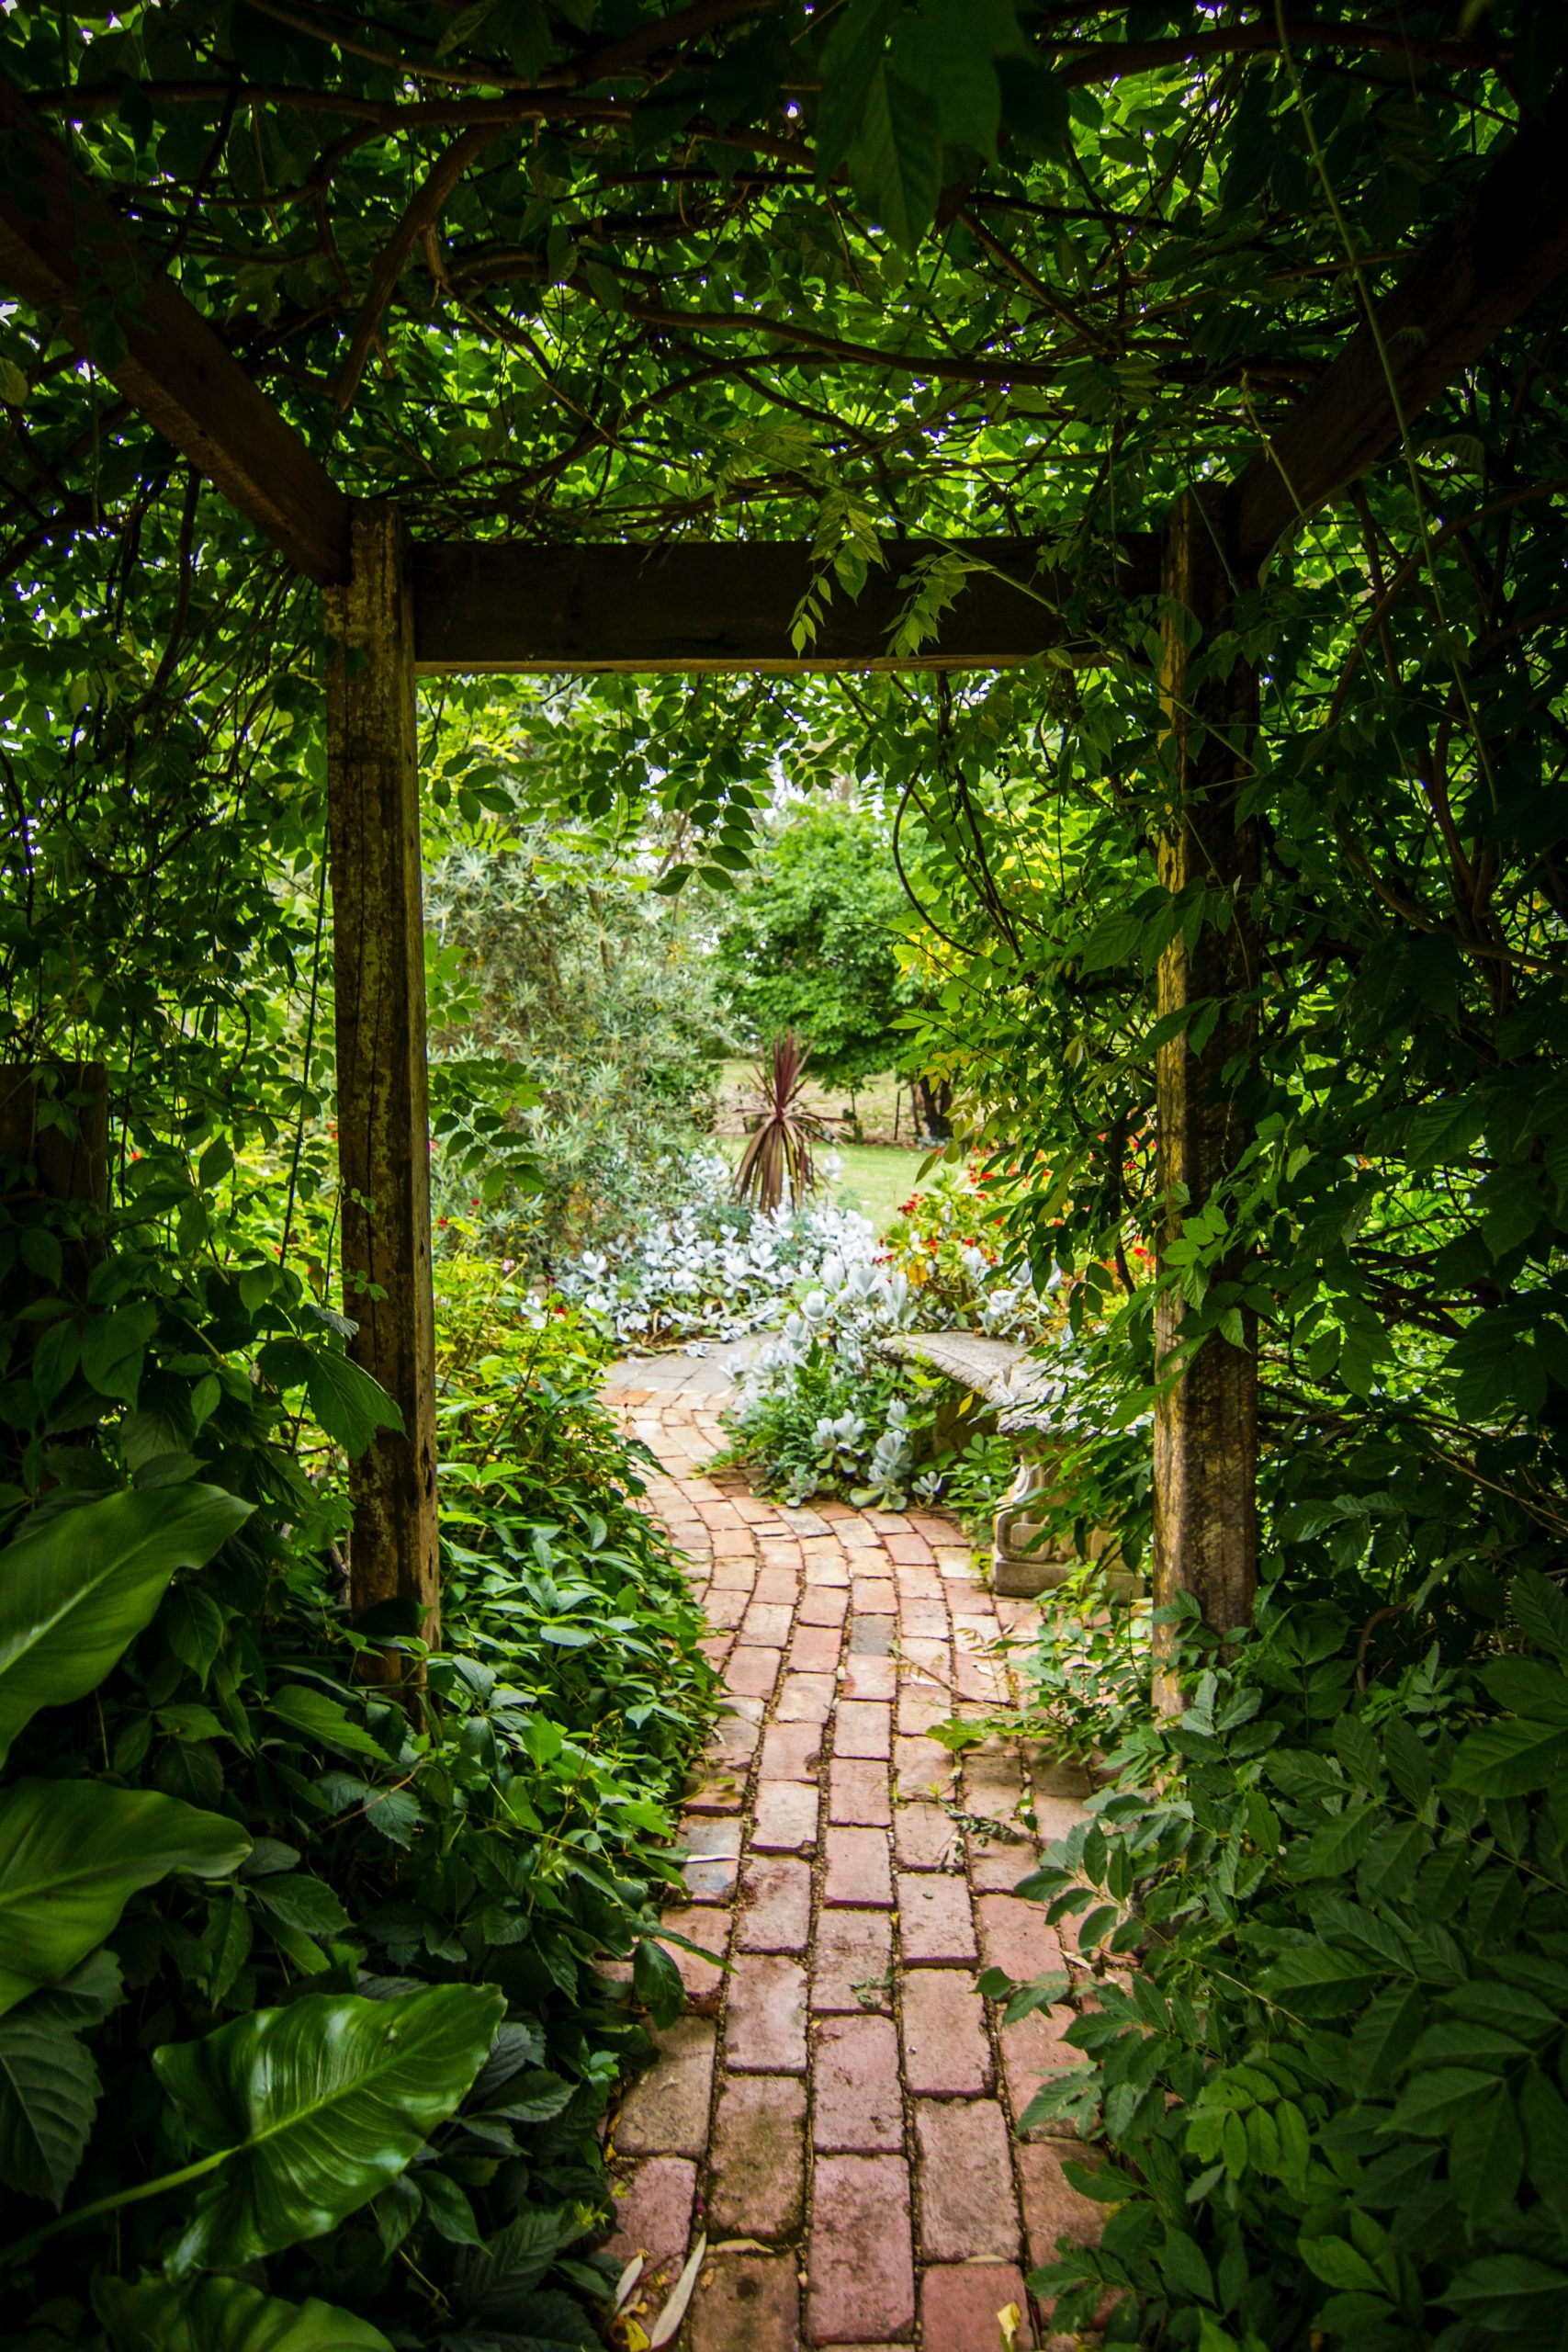 pathway through garden greenery; How To Make Your Yard More Functional